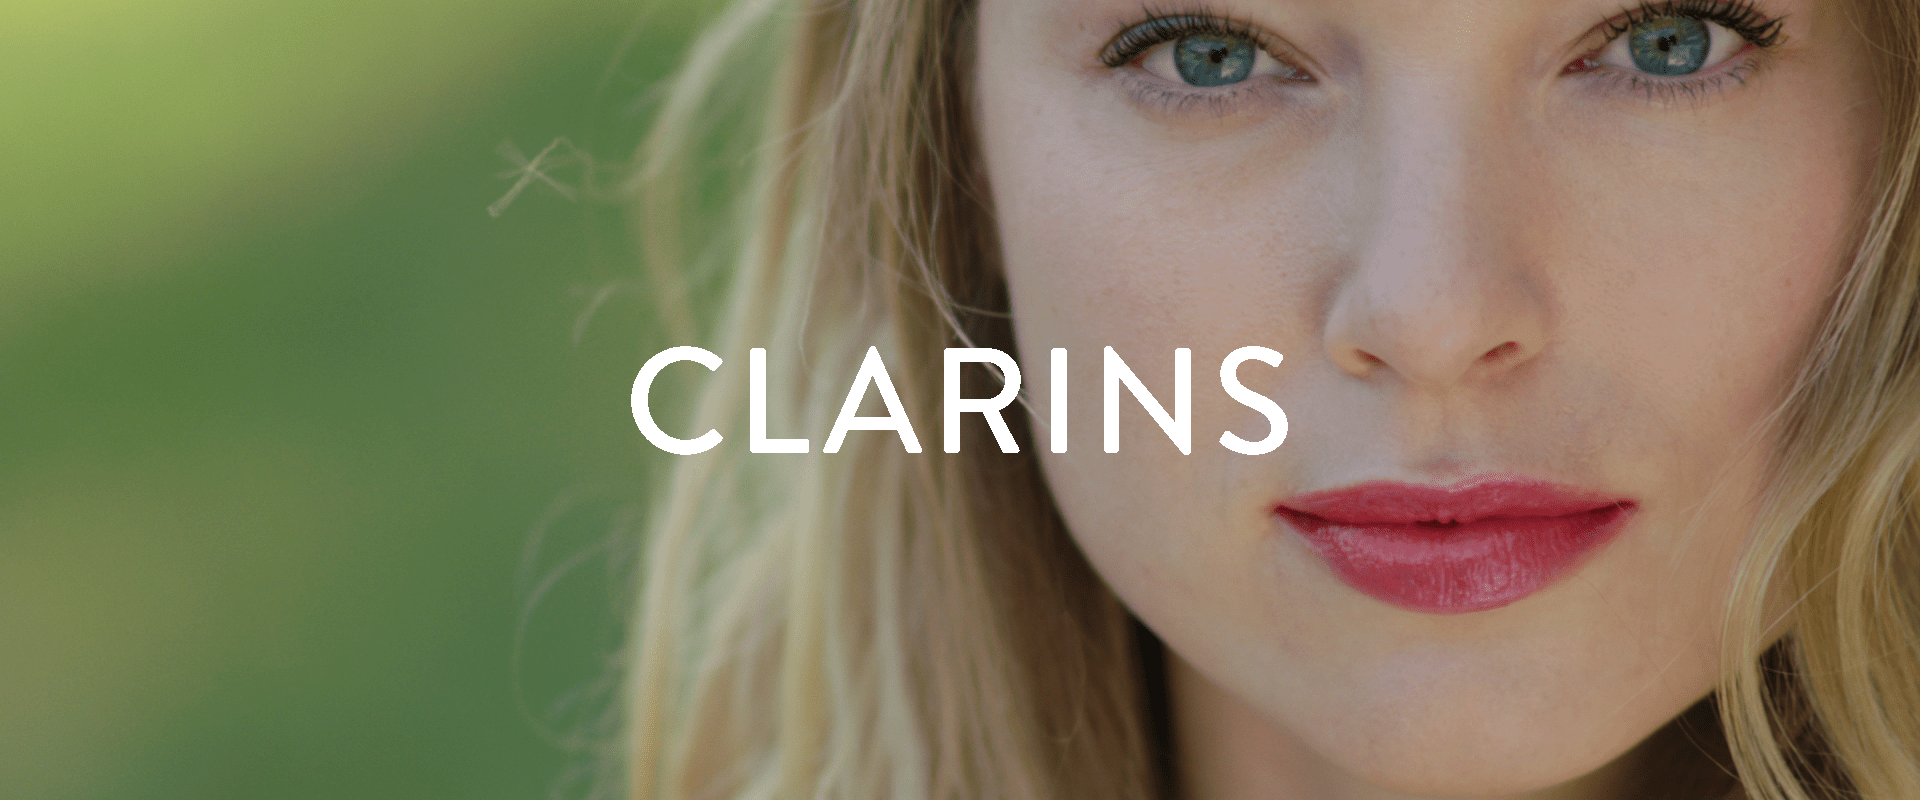 clarins c.png